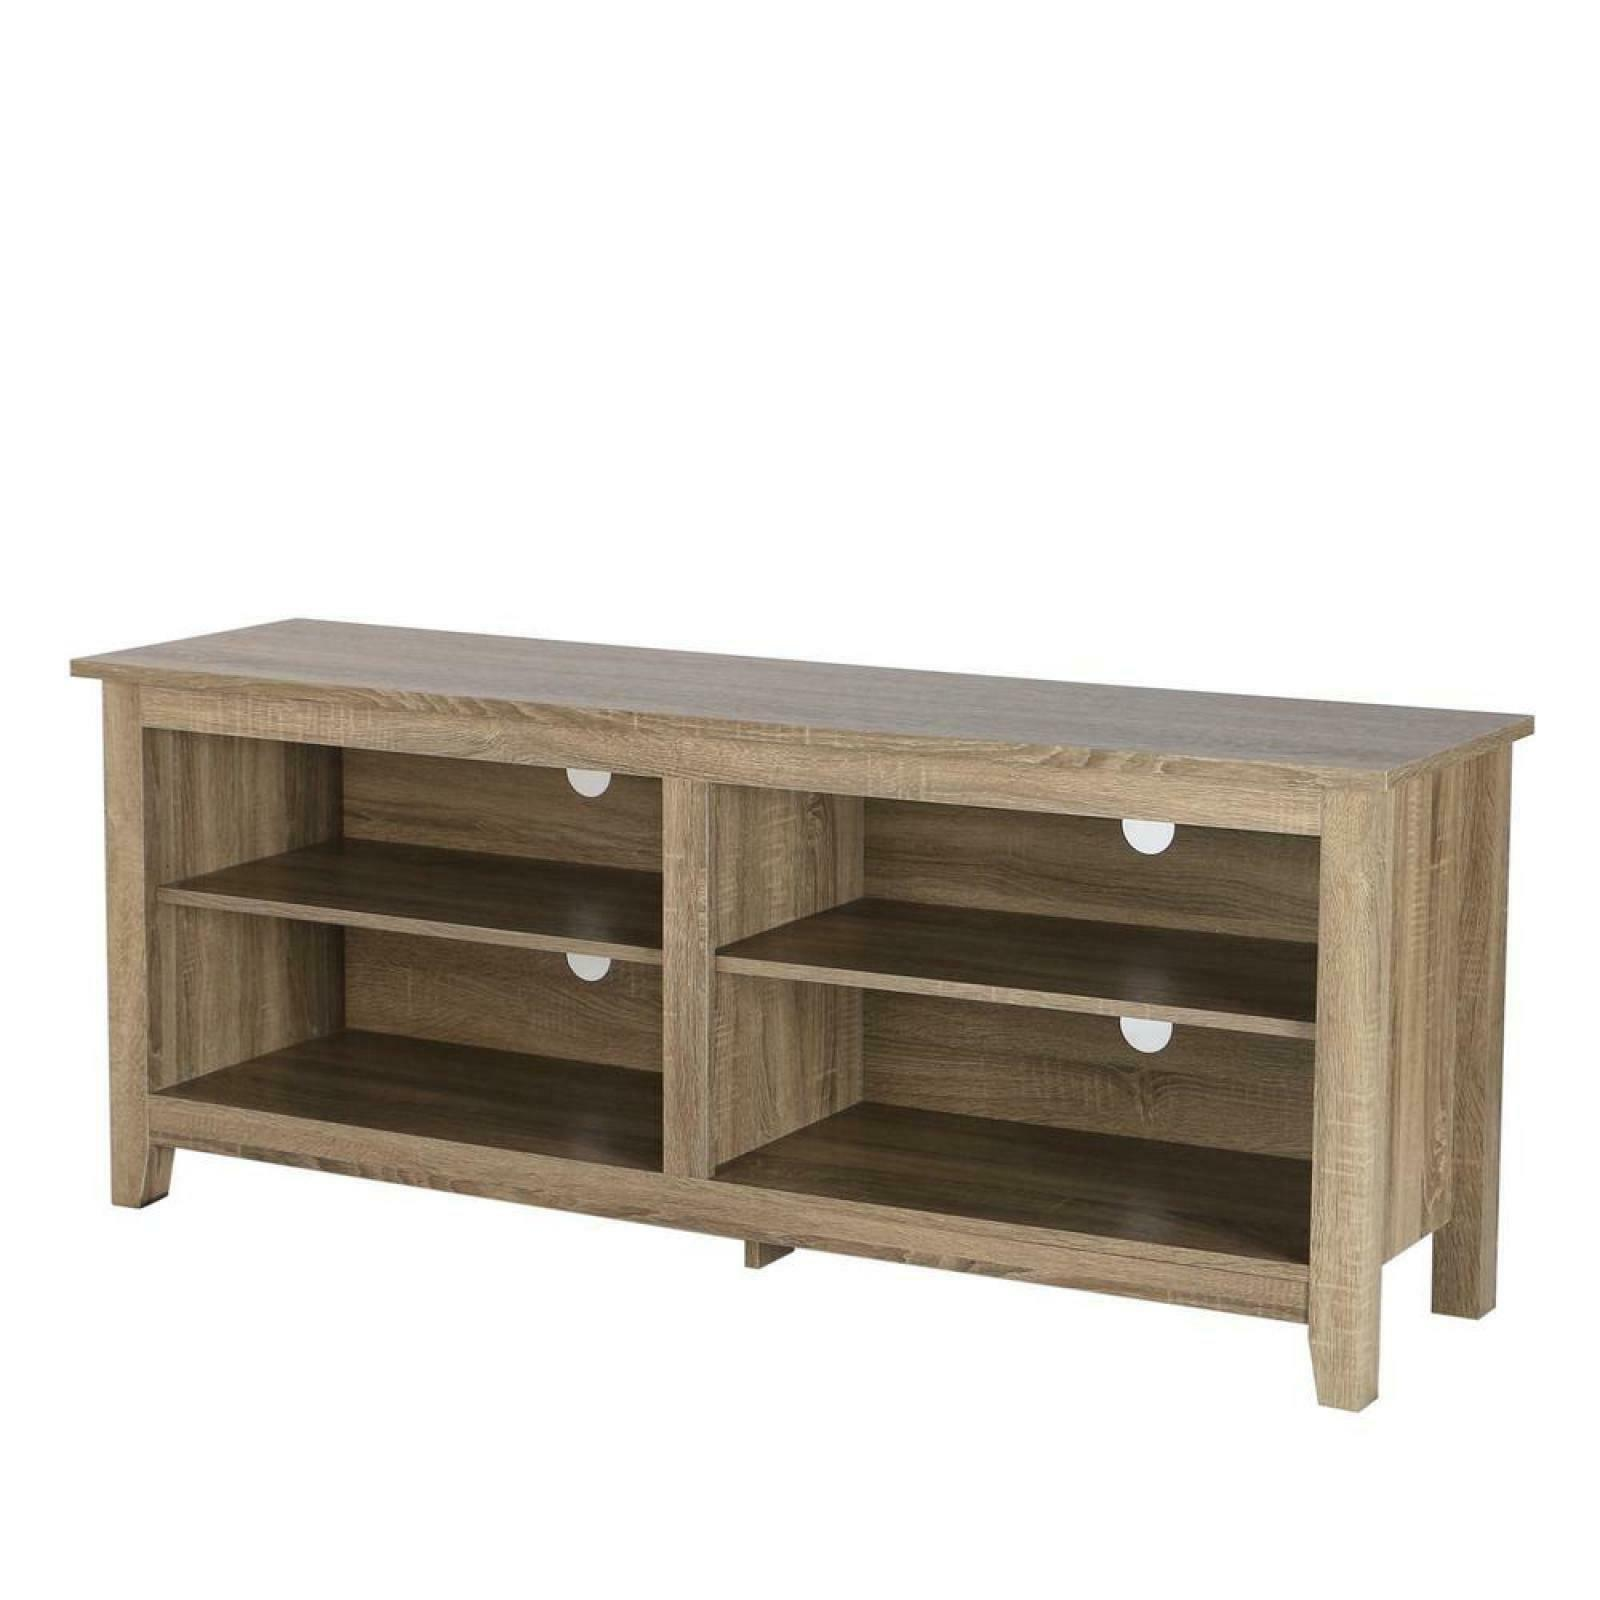 Walker Furniture Company Essential Driftwood Storage Center